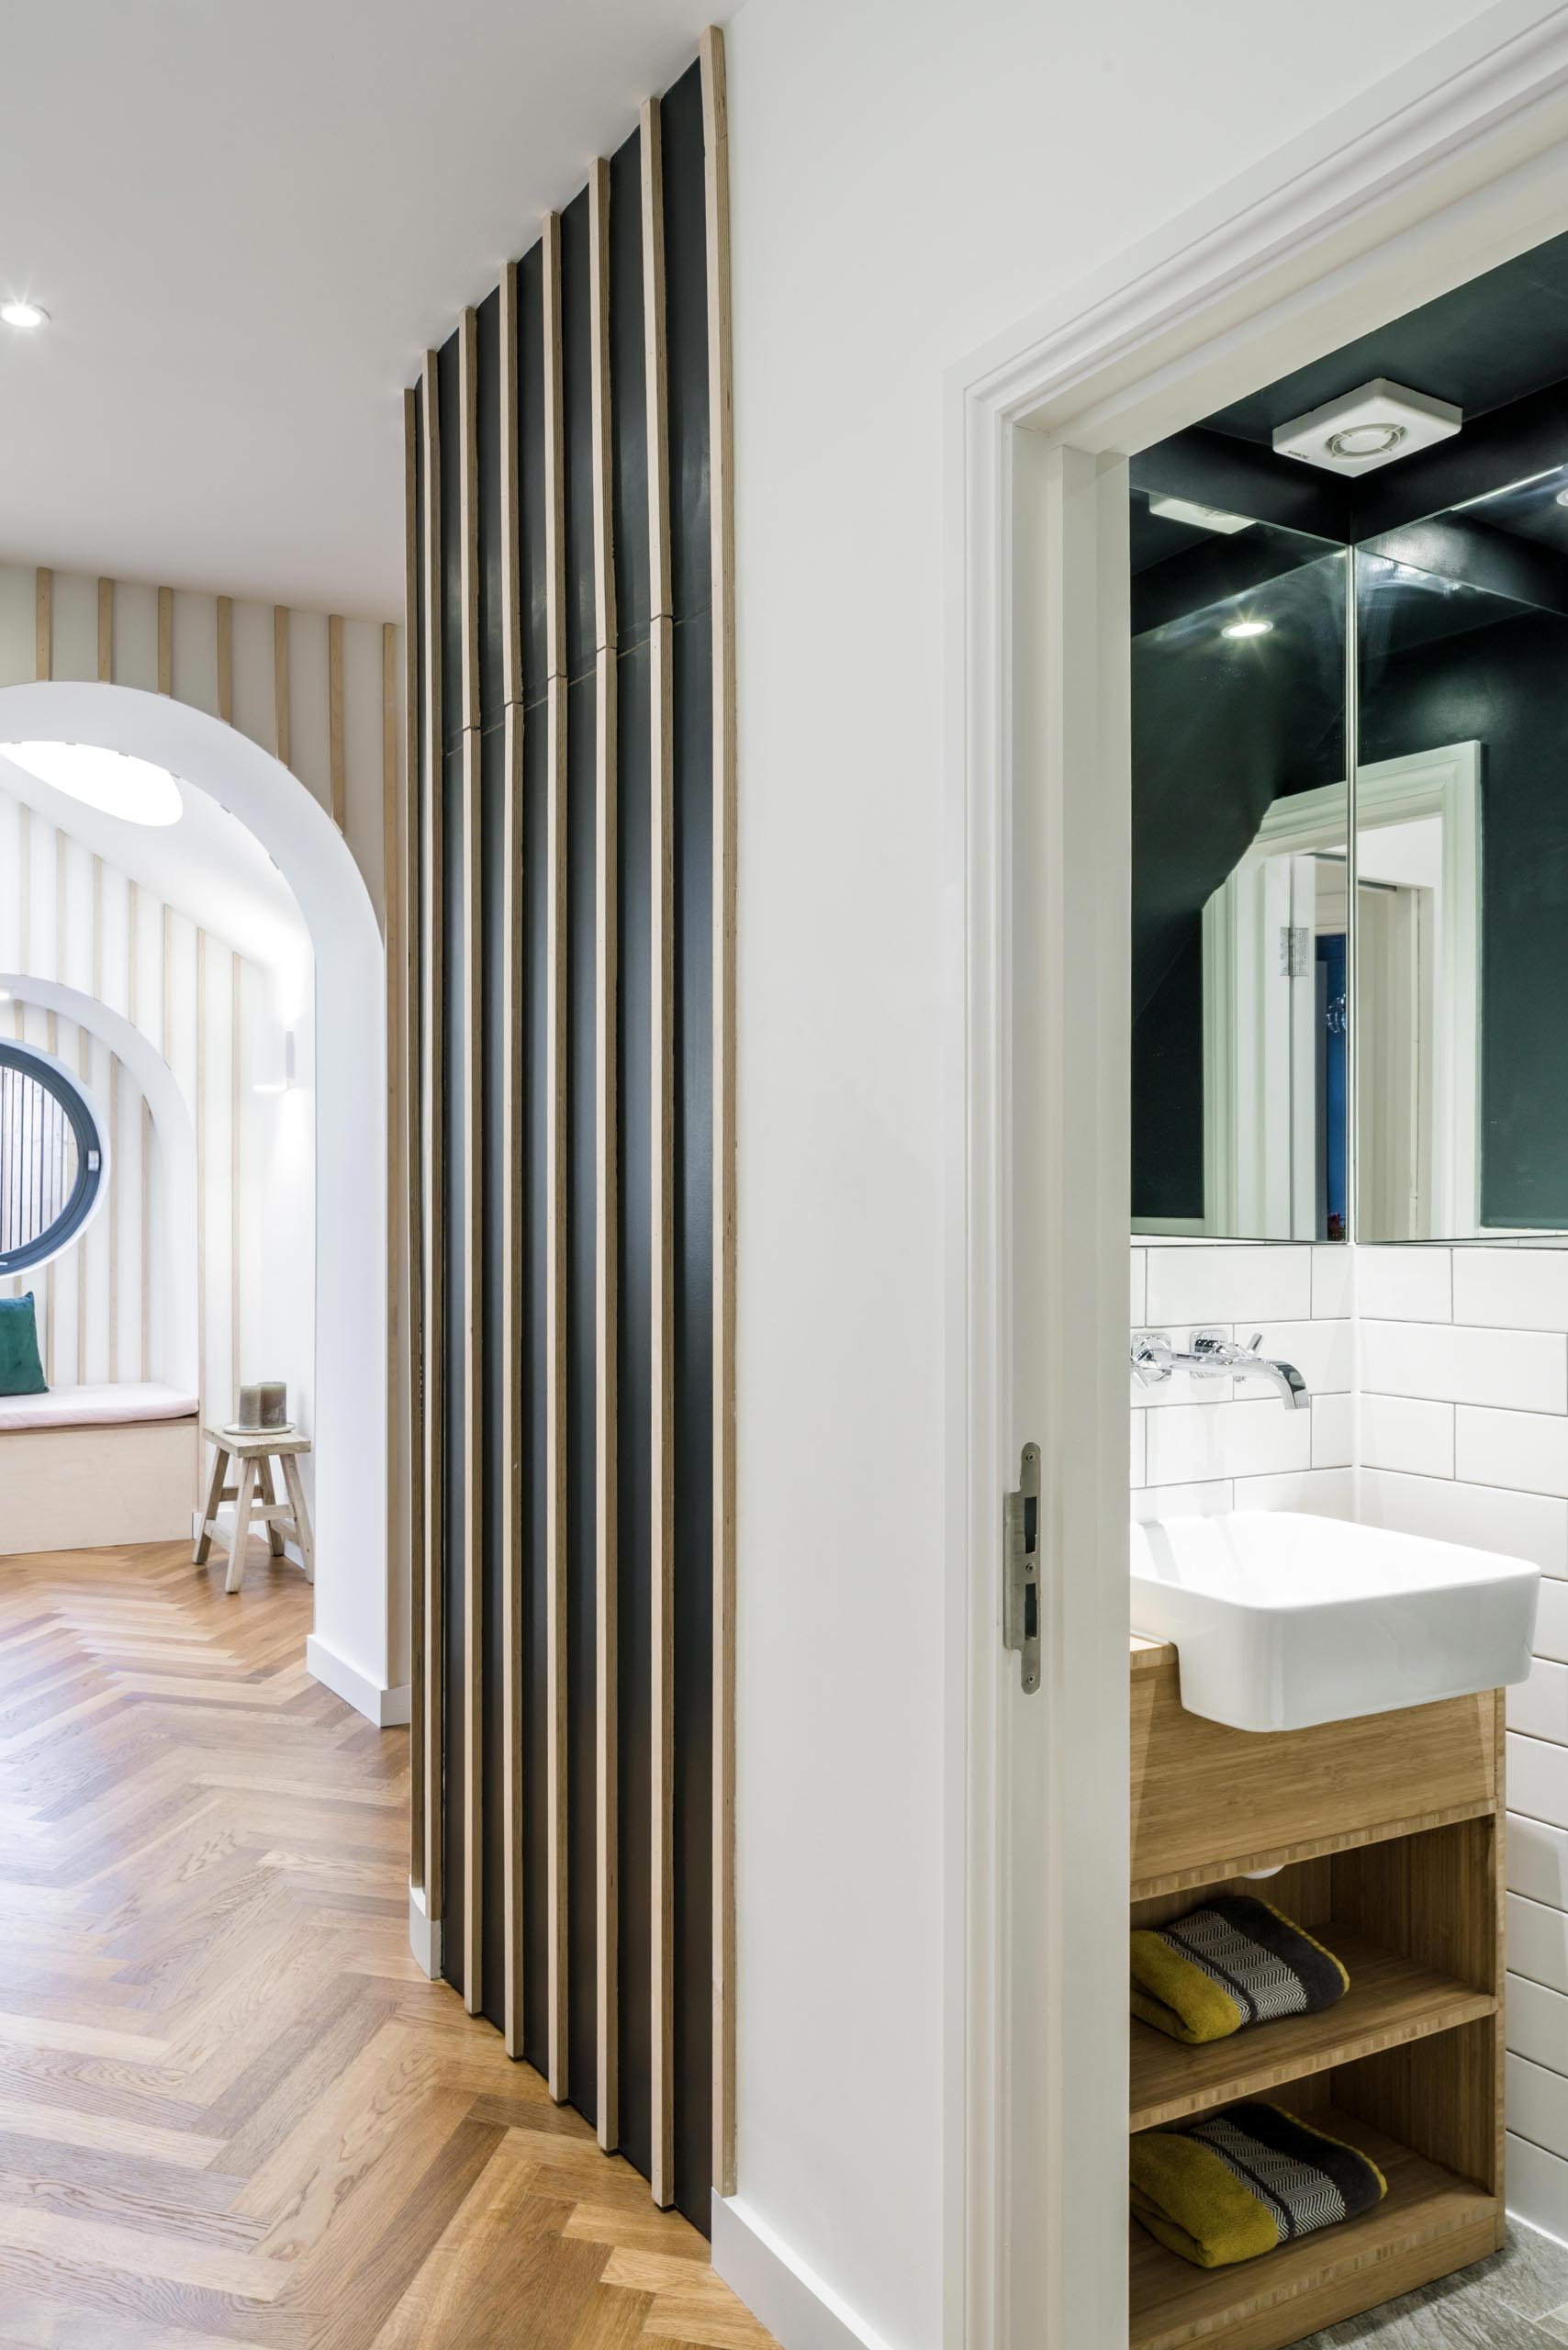 A small powder room that includes a dark ceiling, mirrors that the line the corner, a wood vanity, and white tiles.